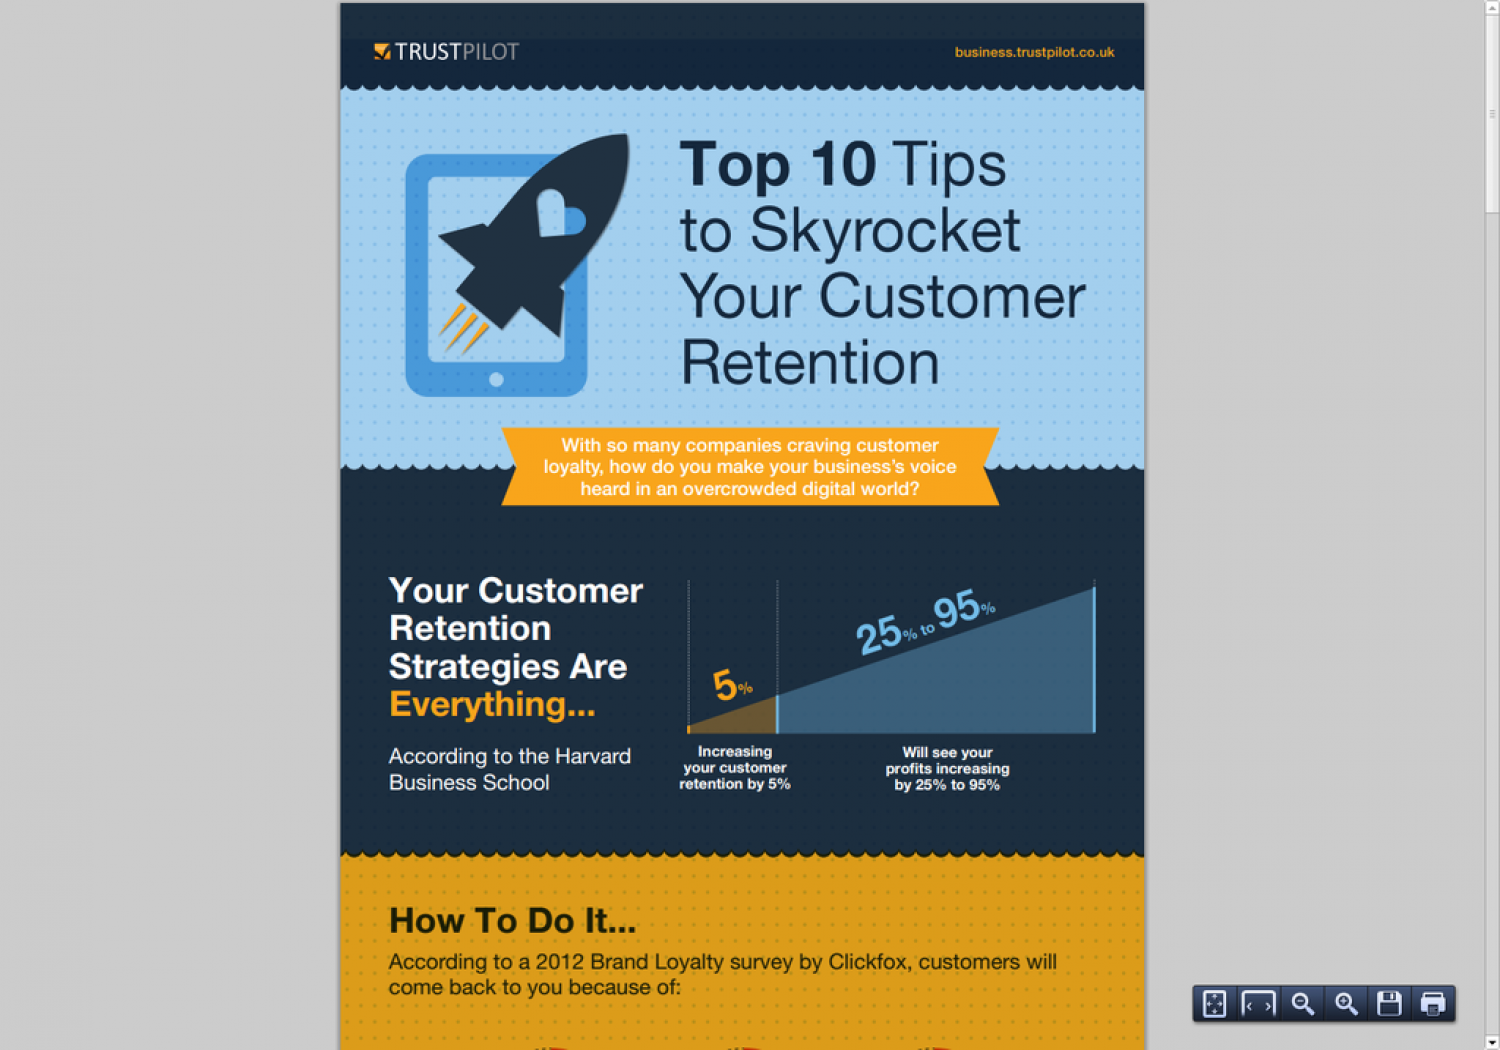 Top 10 Tips to Skyrocket Your Customer Retention Infographic